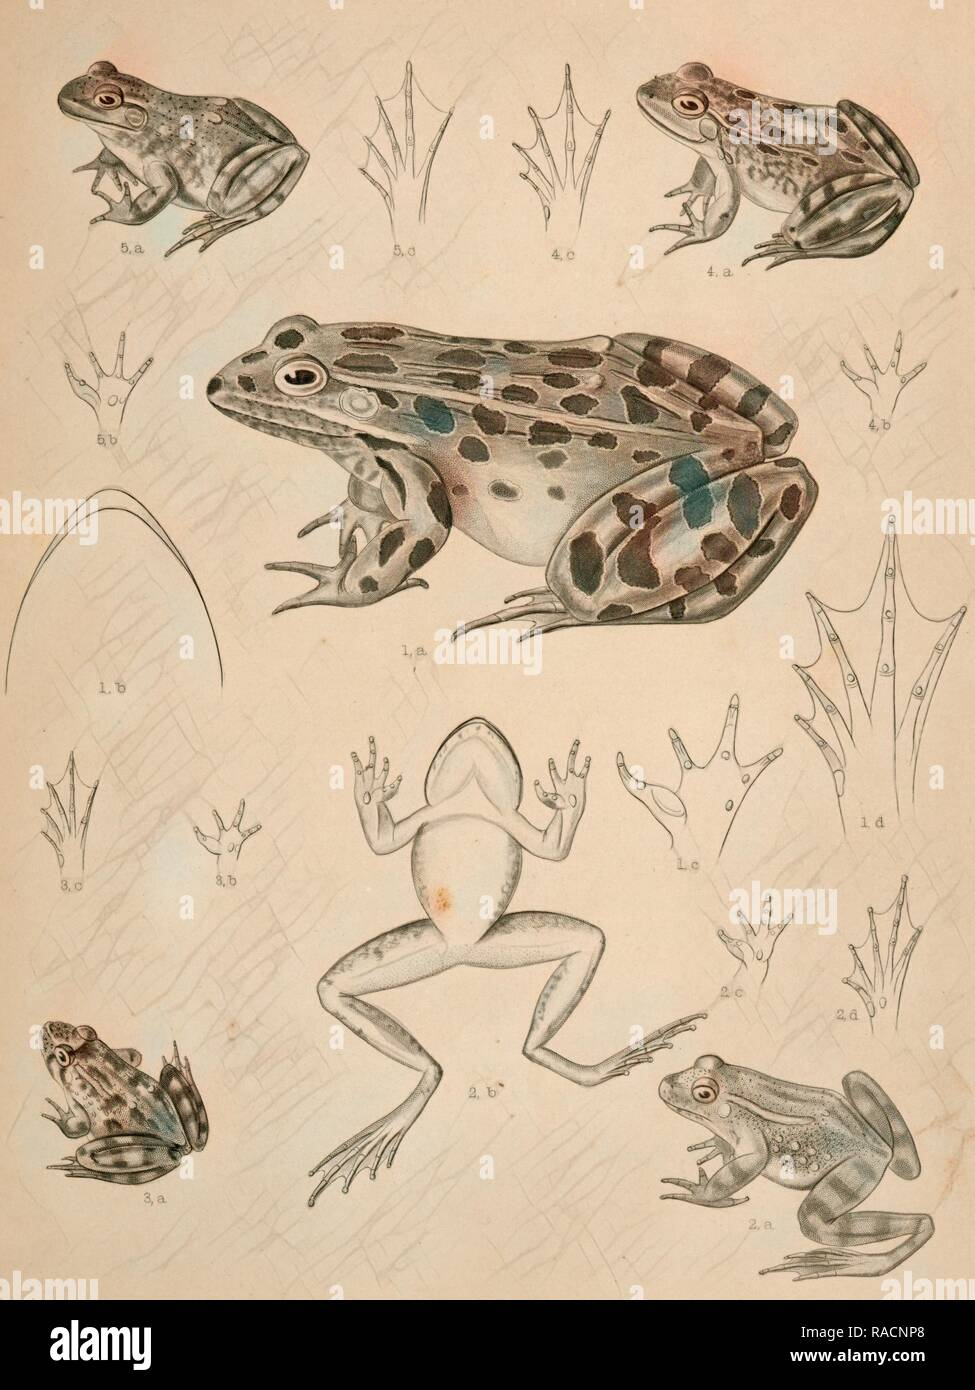 1. Pana halecina, Spotted Frog, b. under surface of head, c. under surface of left fore foot, d. under surface of reimagined - Stock Image